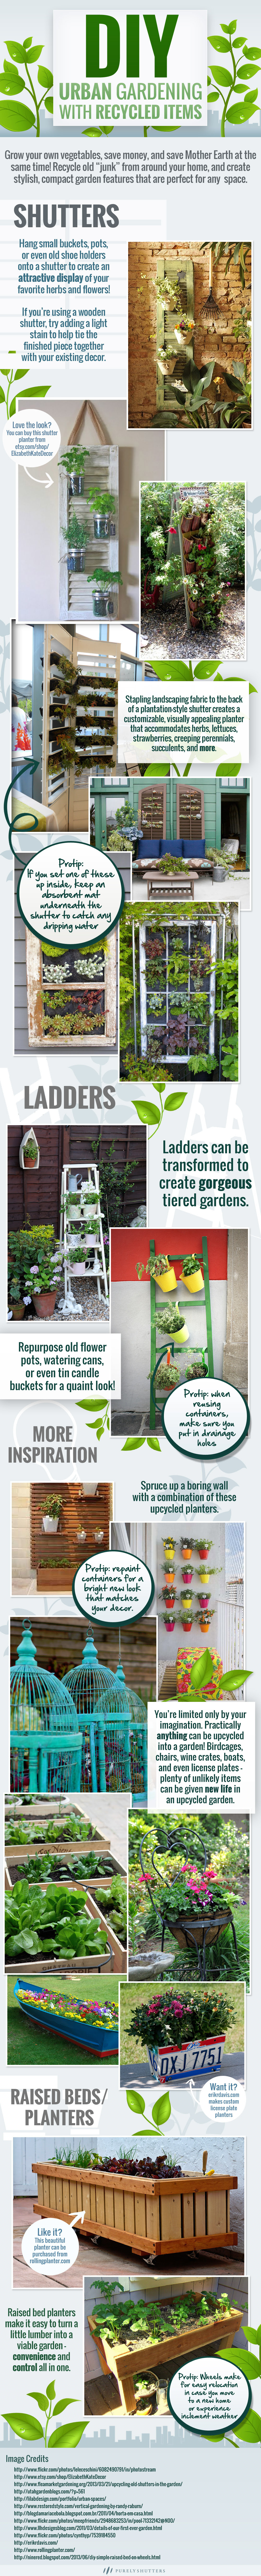 Infographic: DIY Urban Gardening with Recycled Items #infographic